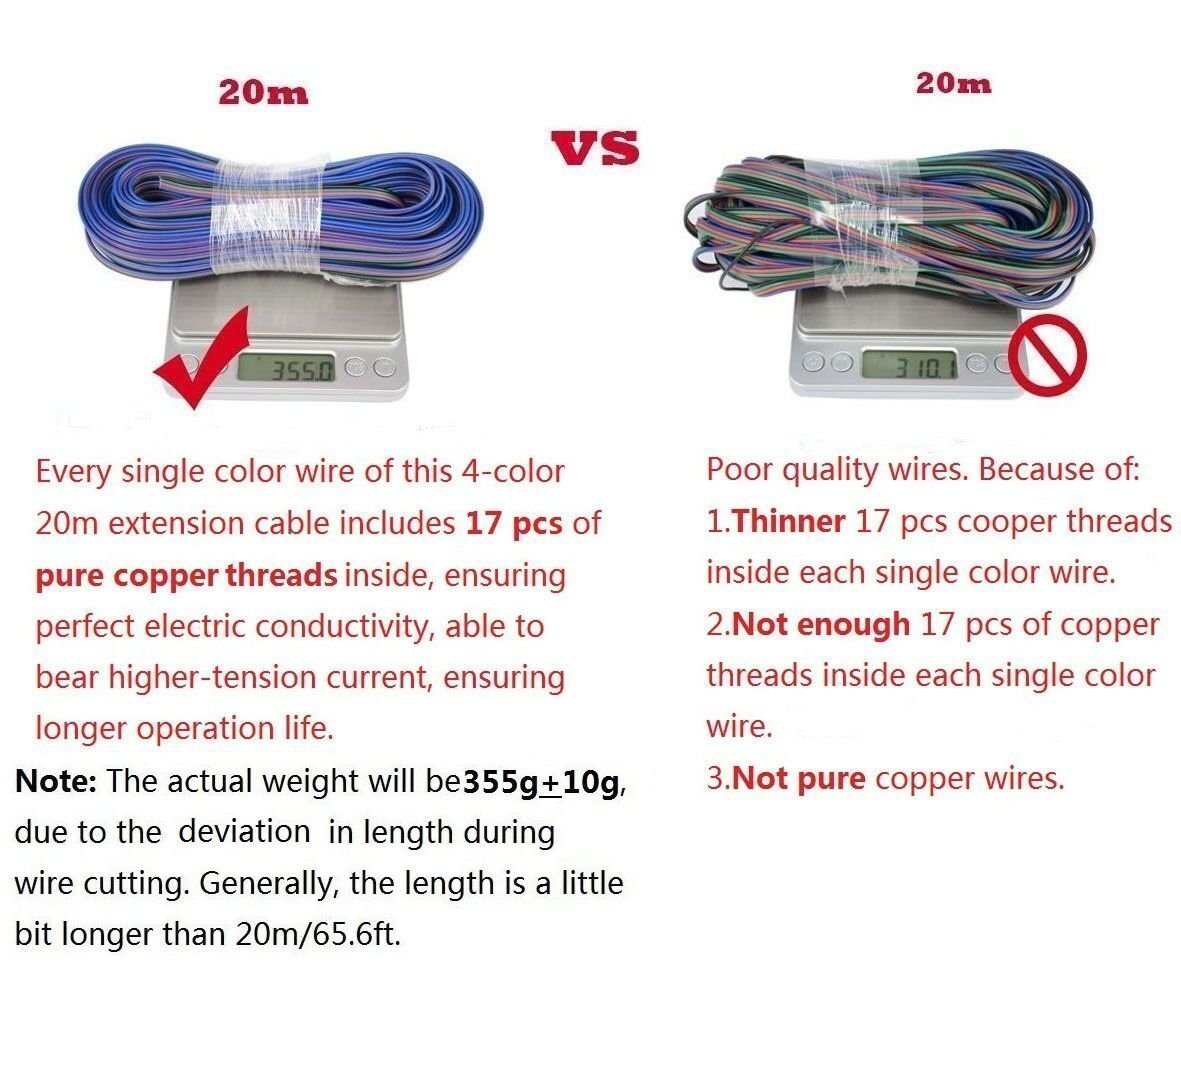 TronicsPros 20m 65.6ft 4 Pin 4 Color RGB Extension Cable 22AWG Wire ...